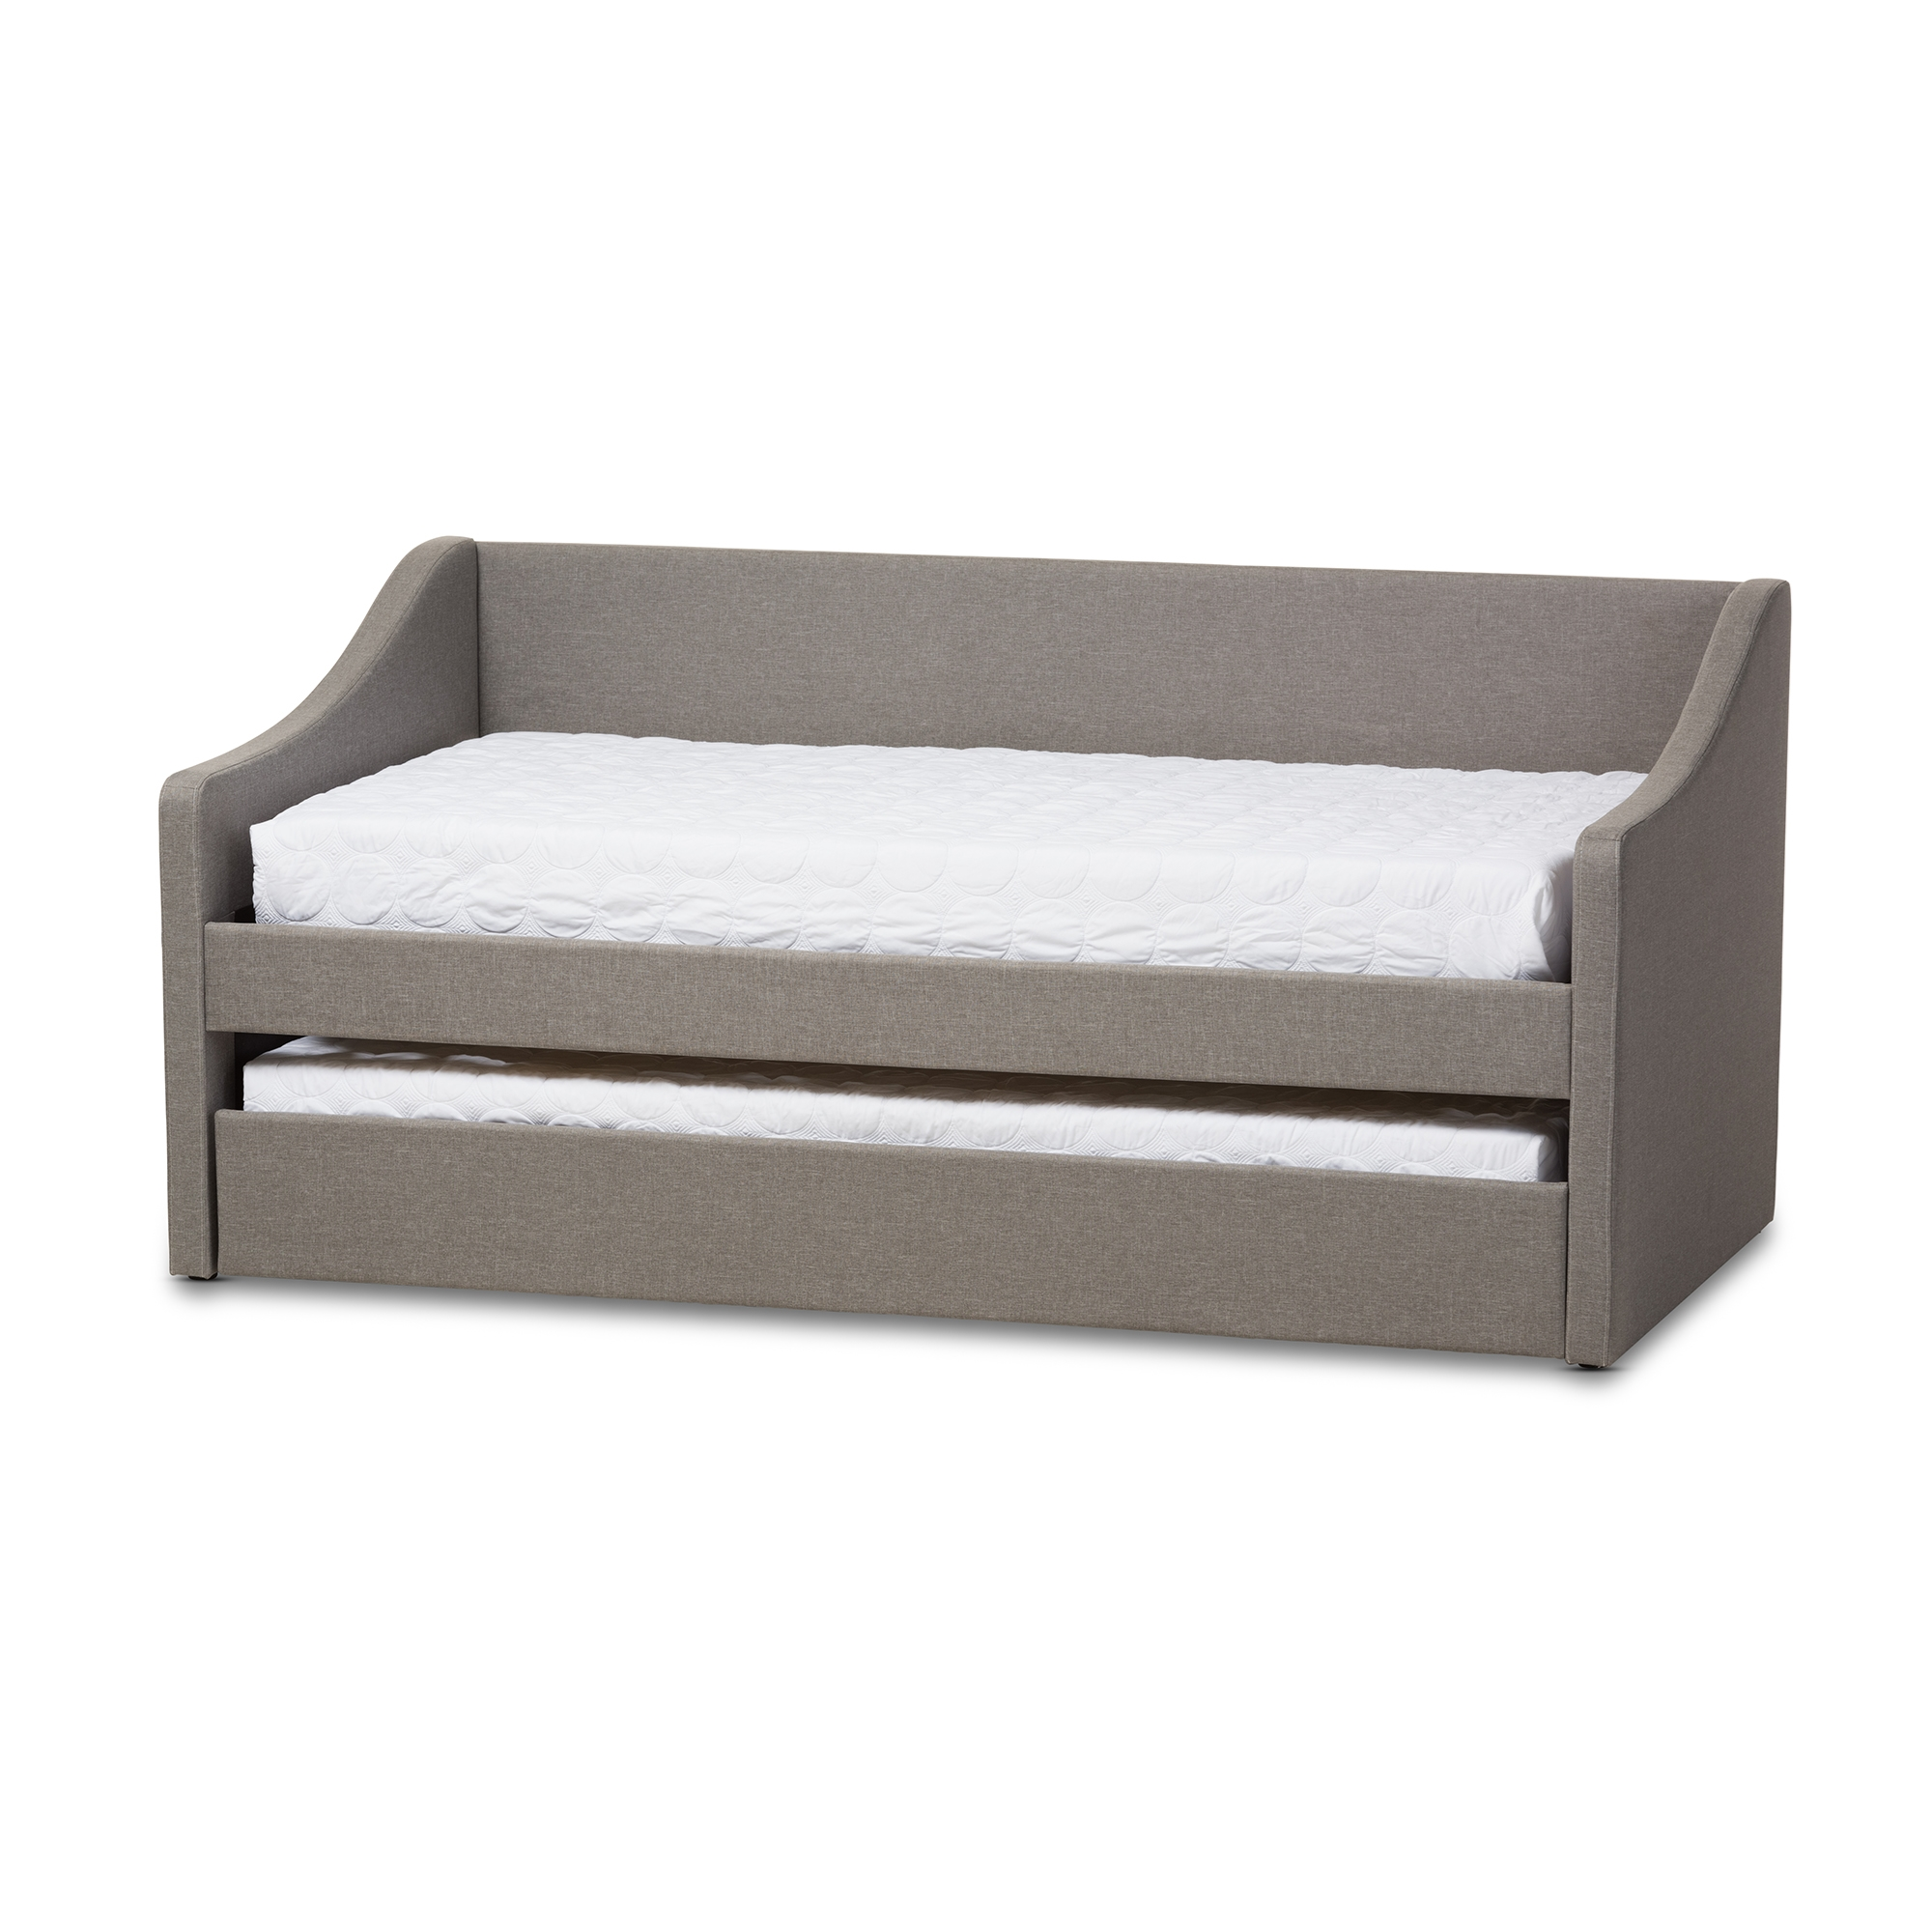 Baxton Studio Barnstorm Modern And Contemporary Grey Fabric Upholstered  Daybed With Guest Trundle Bed   CF8755 ...